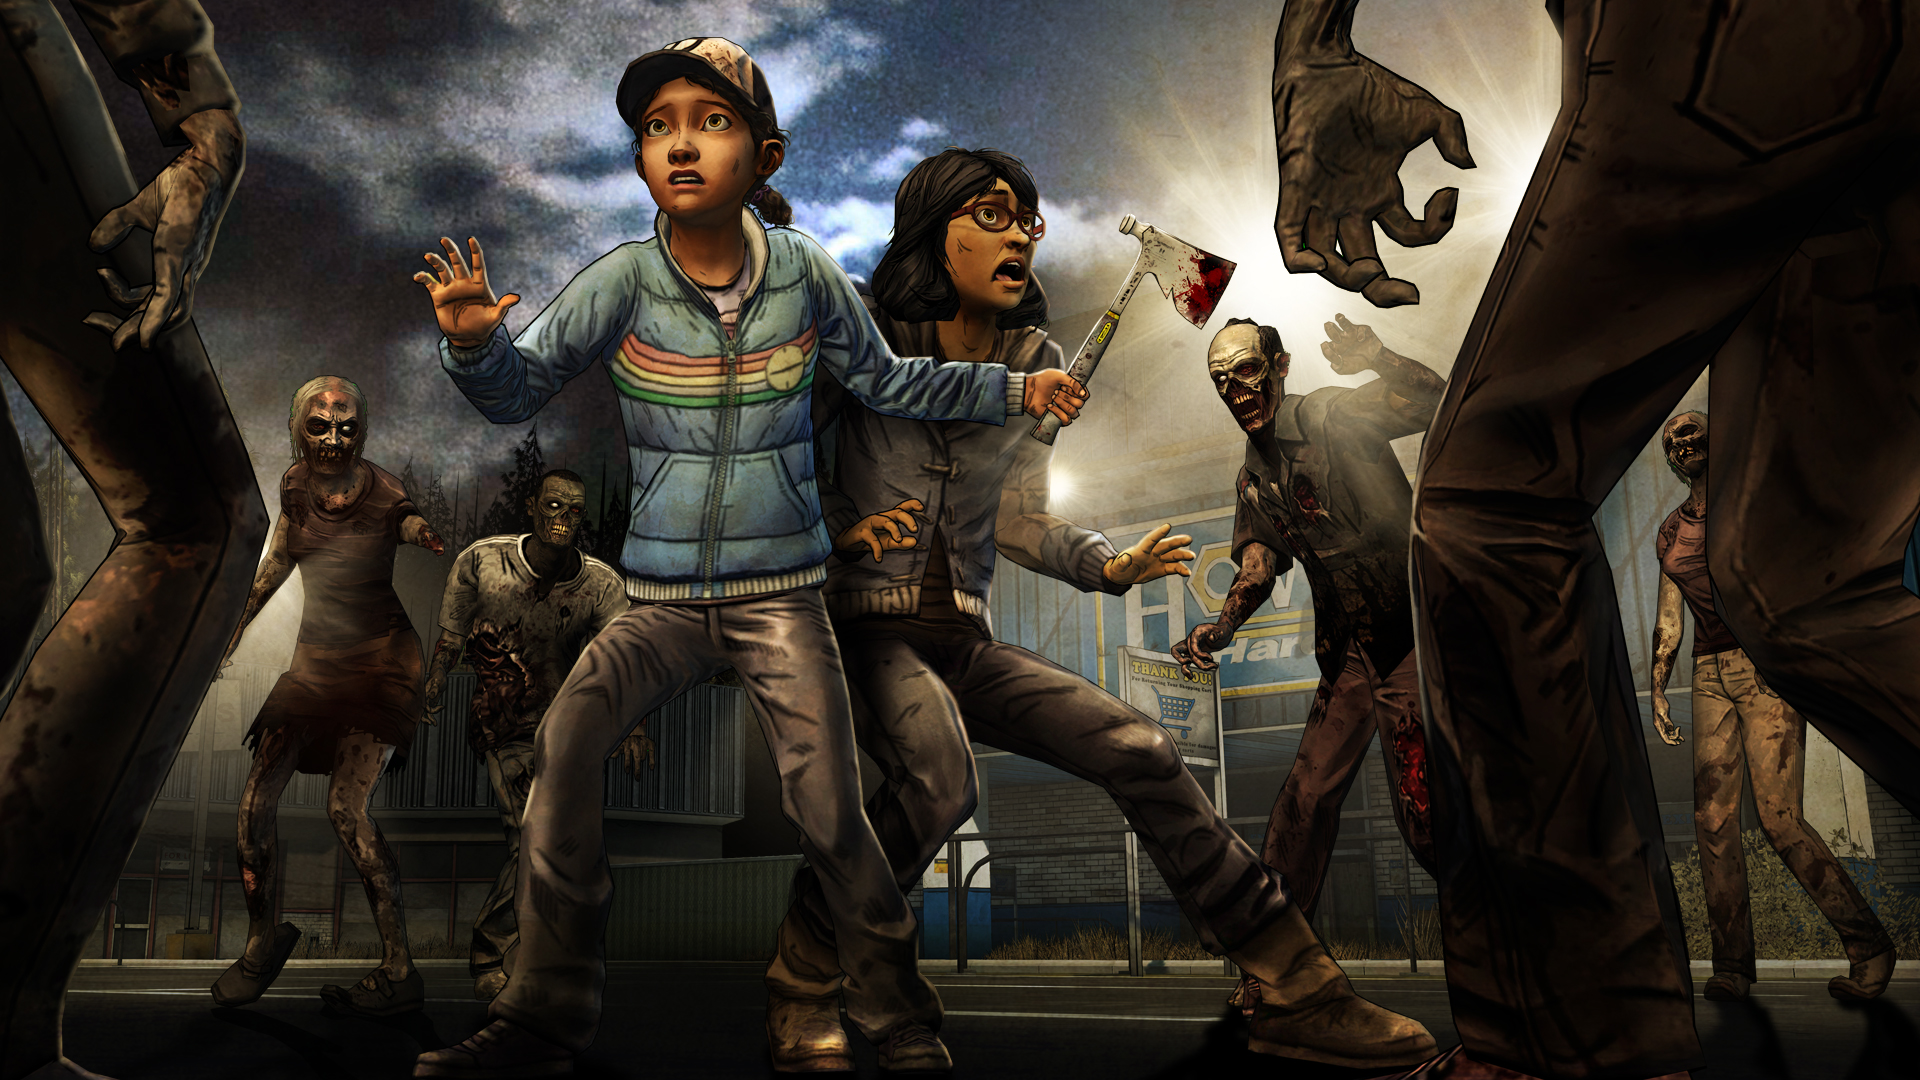 Episode 3: In Harm's Way of The Walking Dead: Season 2 will shuffle onto iOS on May 15th